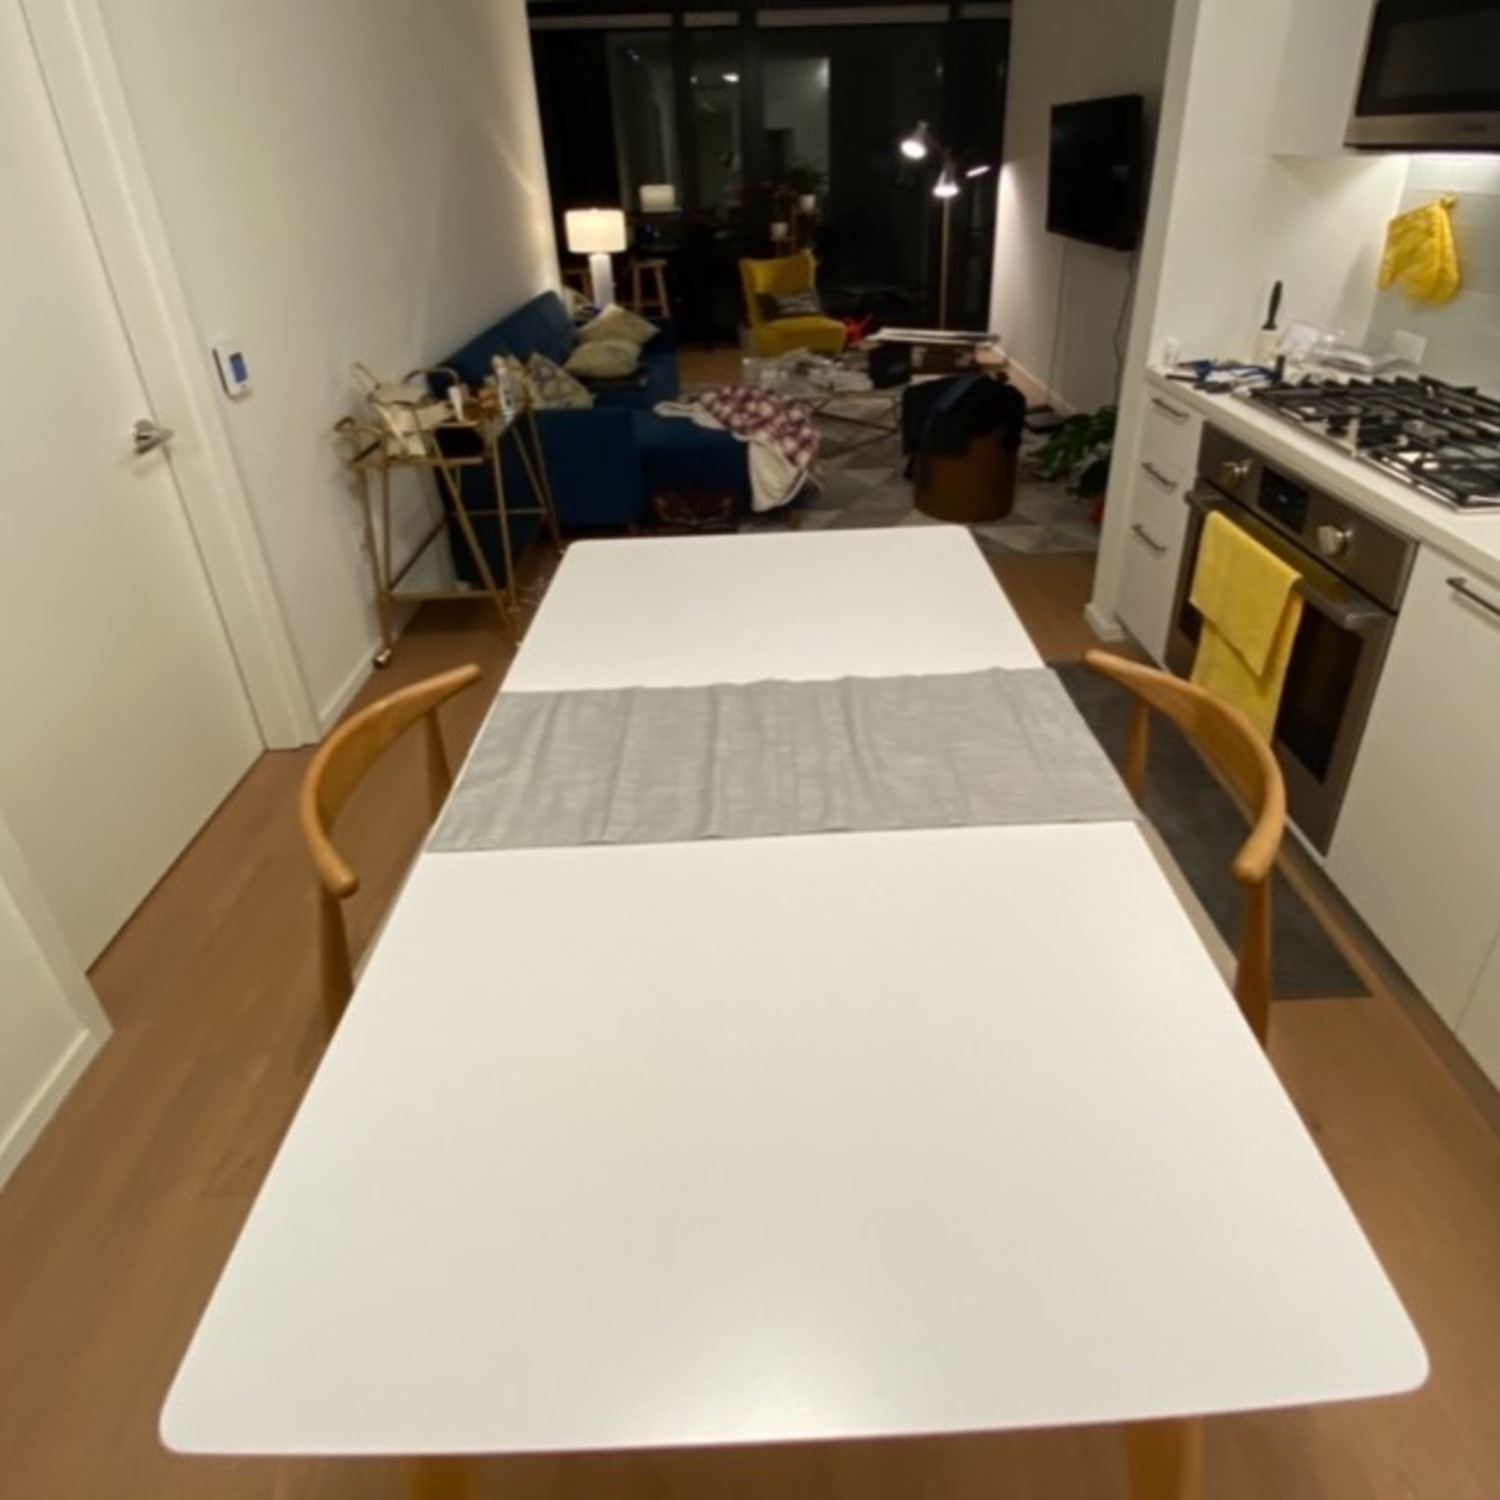 Wayfair Charming White All Modern Extendable Dining Table - image-5